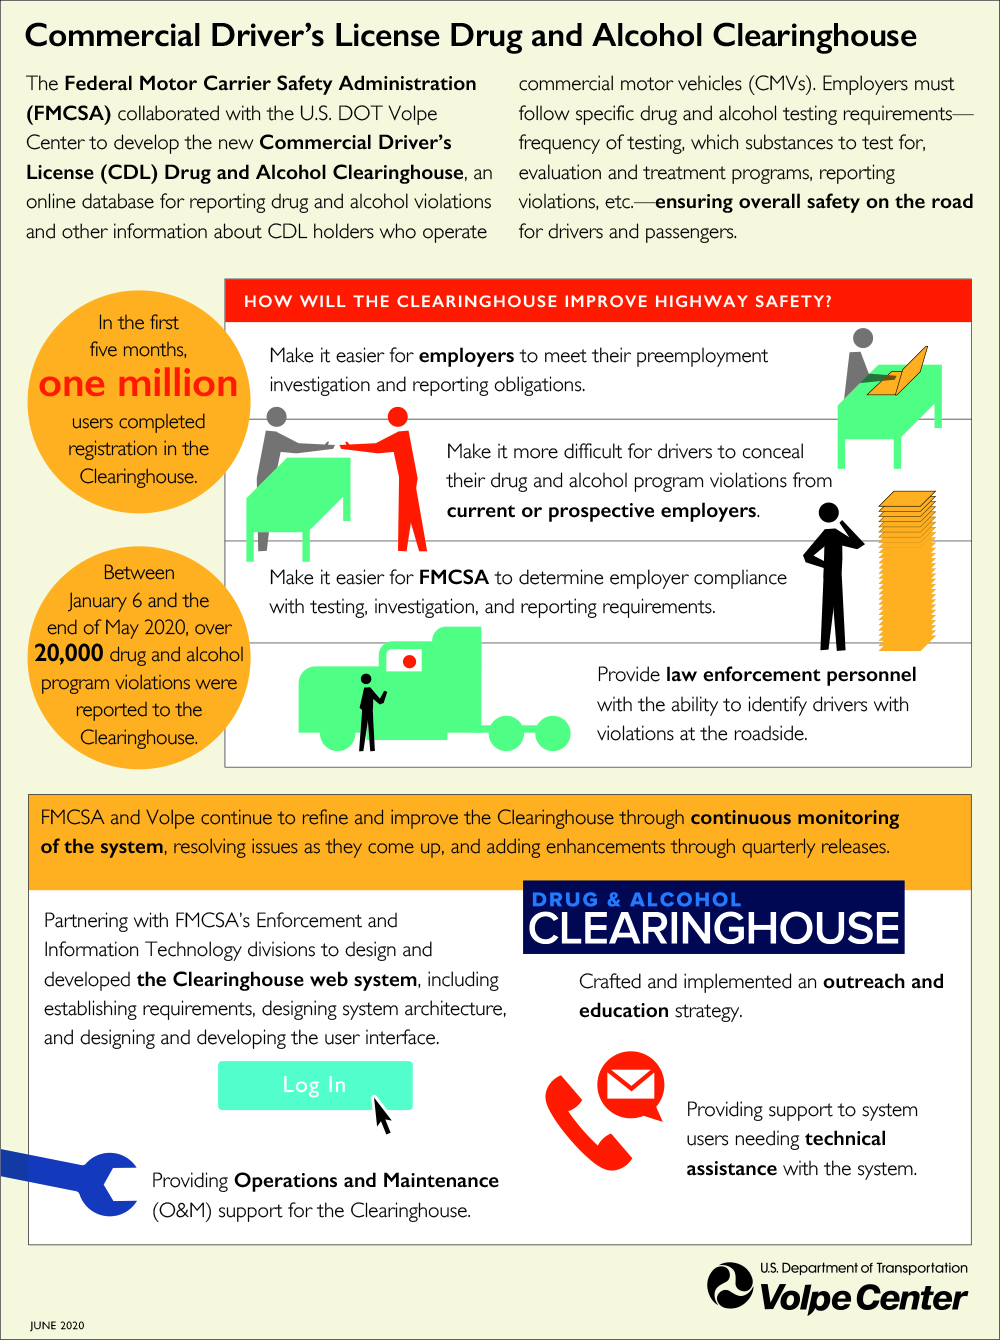 Infographic showing how the Drug & Alcohol Clearinghouse improves highway safety.